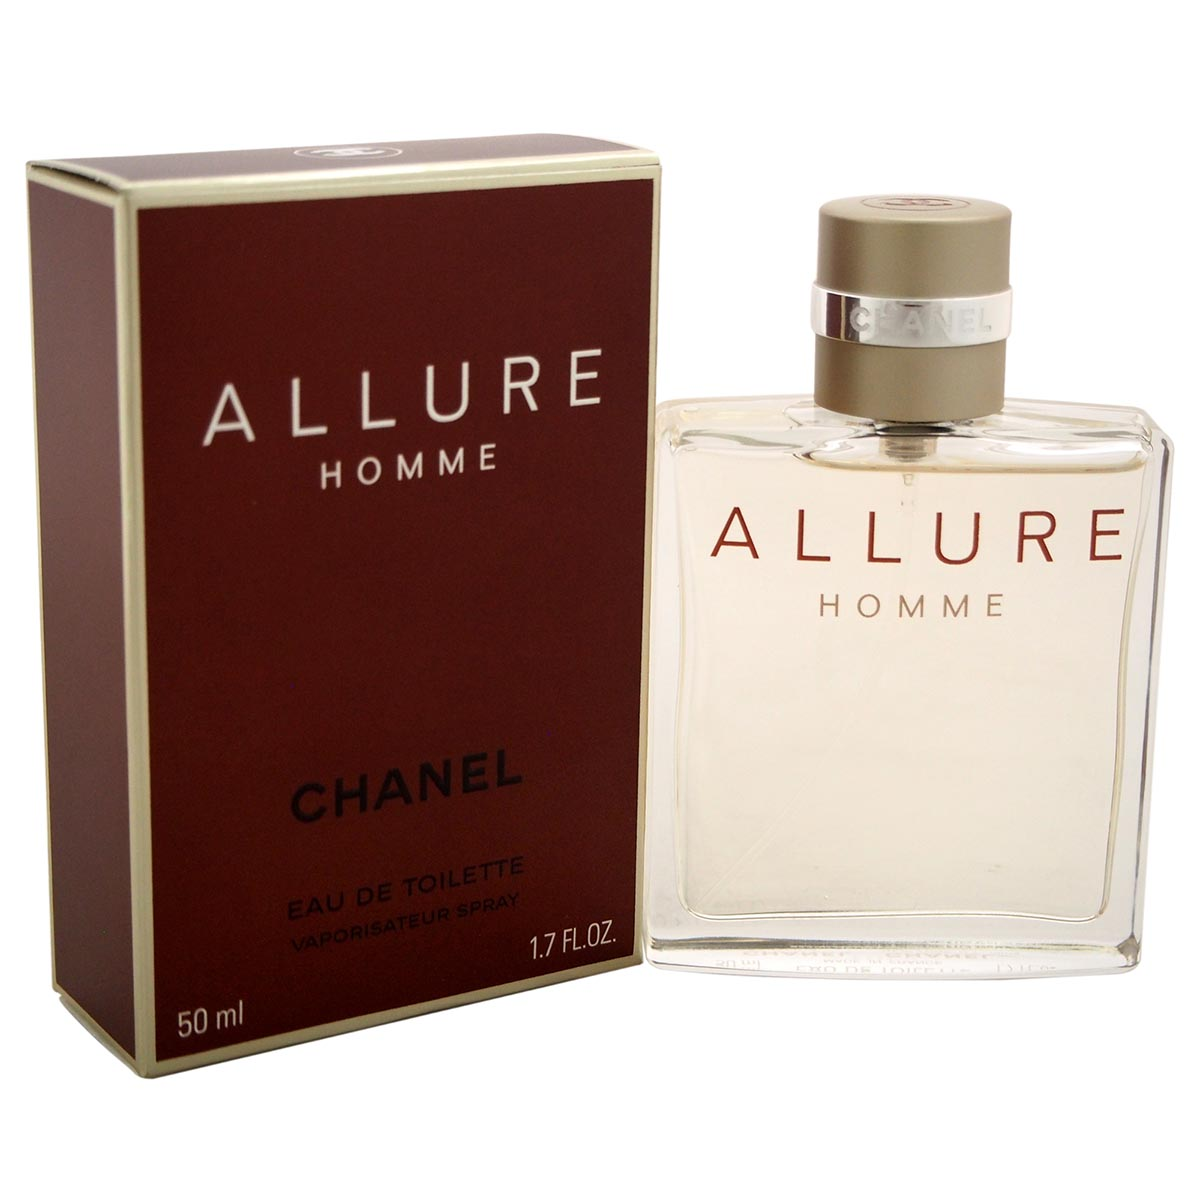 Chanel allure homme eau de toilette 50ml